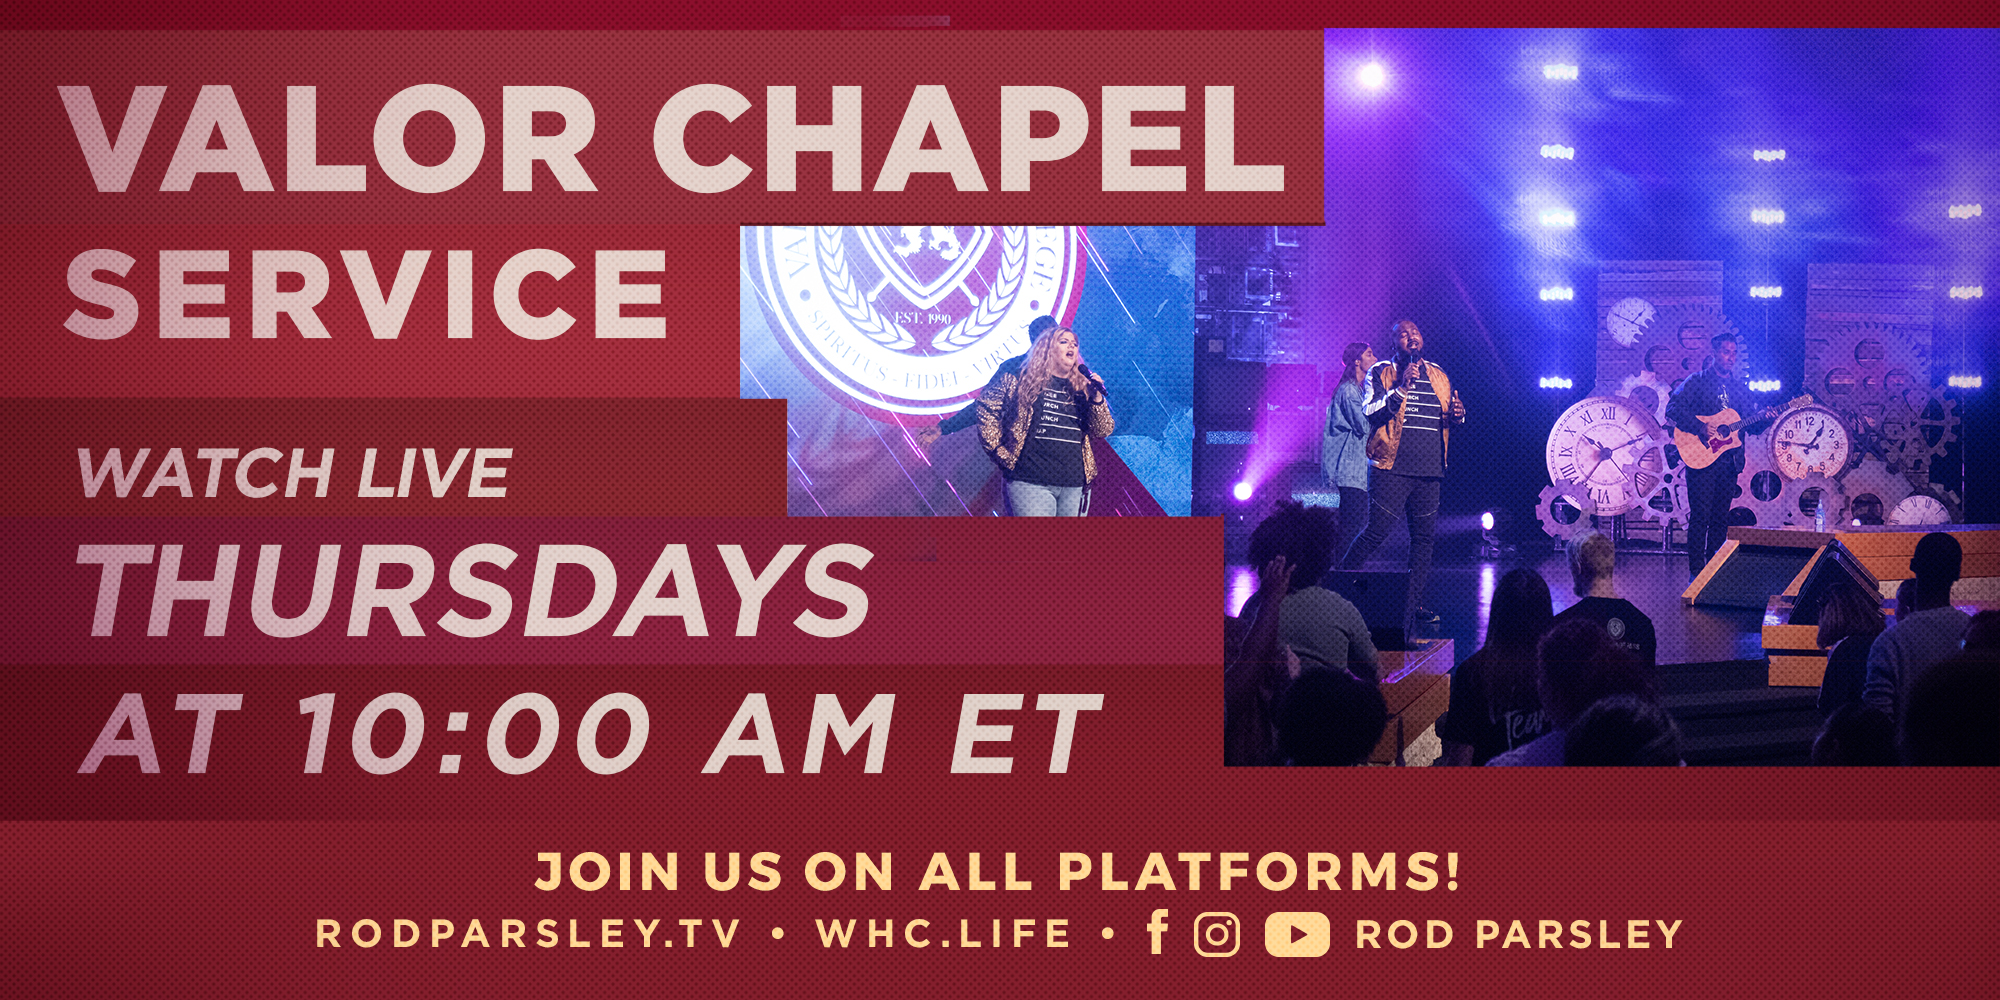 Valor Chapel Service Watch Live Thursdays at 10am Et Join Us on All Platforms! Rodparsley.Tv Whc.Life Facebook Instagram Youtube Rod Parsley